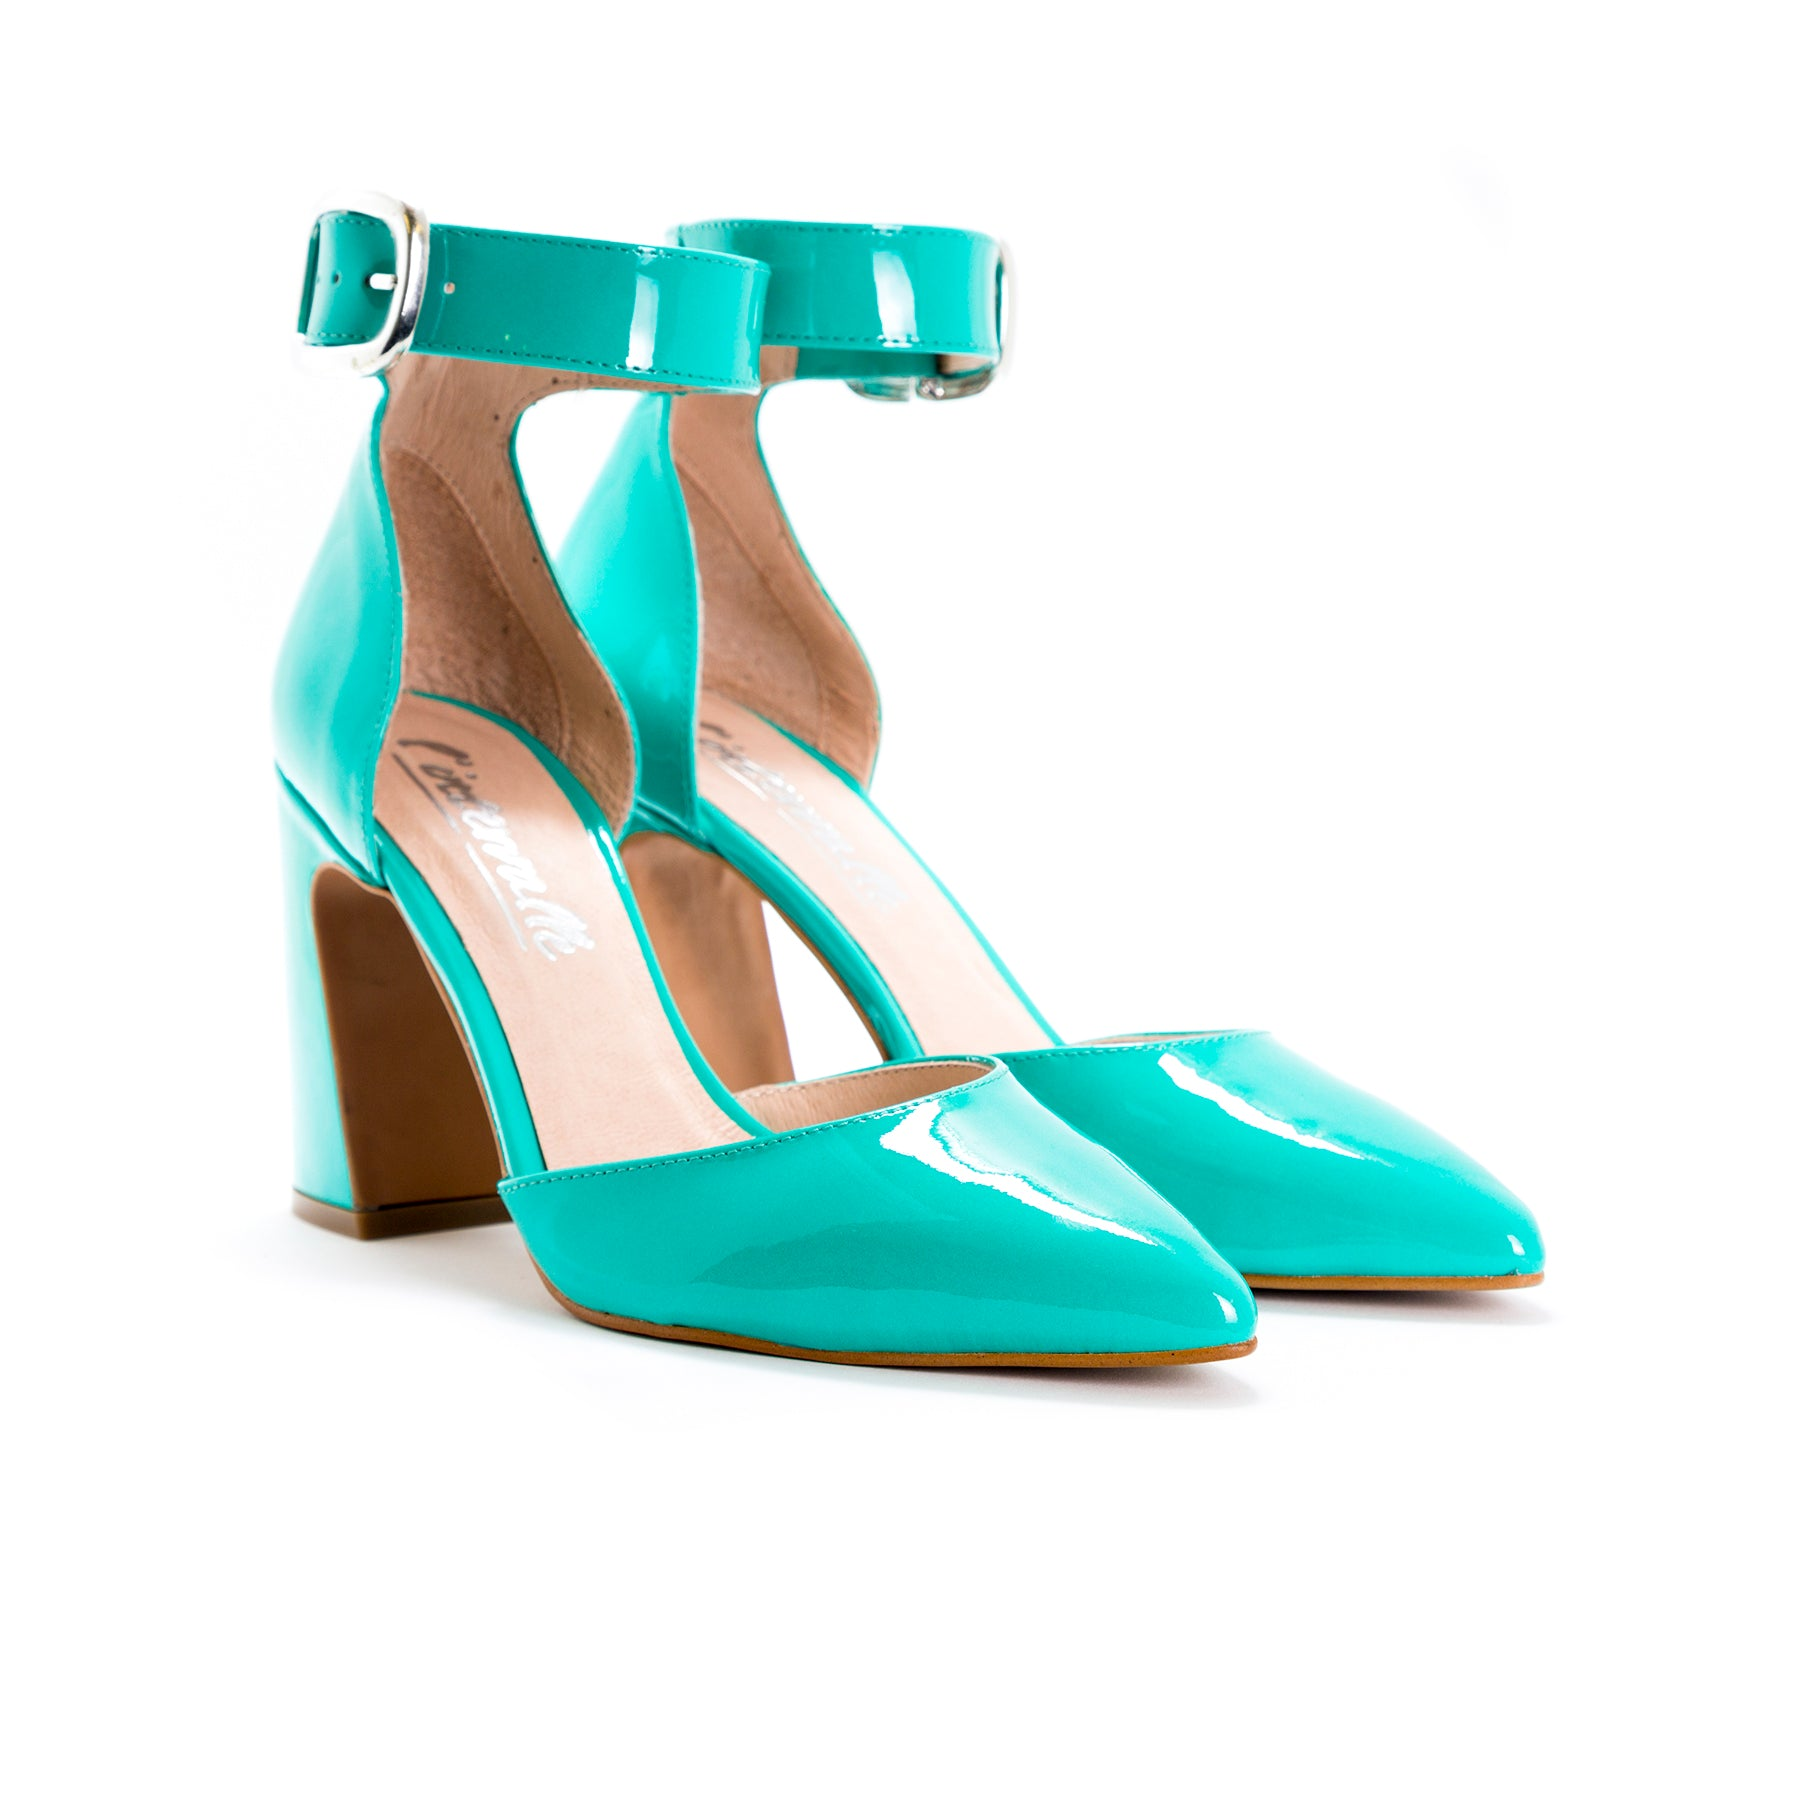 L'INTERVALLE FELICIA - High heels - aqua Z9R6yMuws